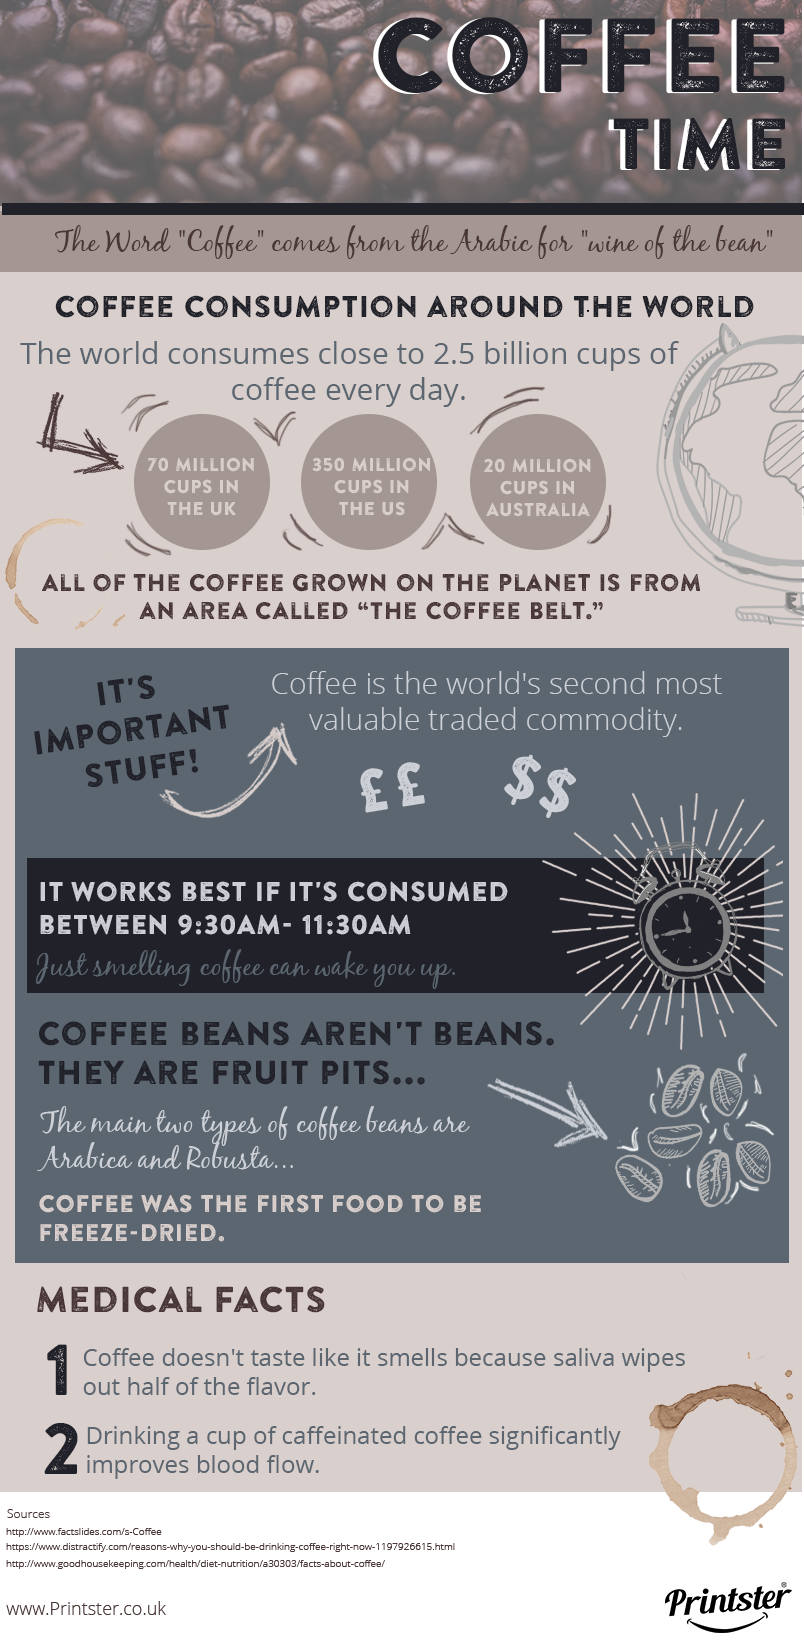 COFFE INFOGRAPHIC - Printster.co.uk